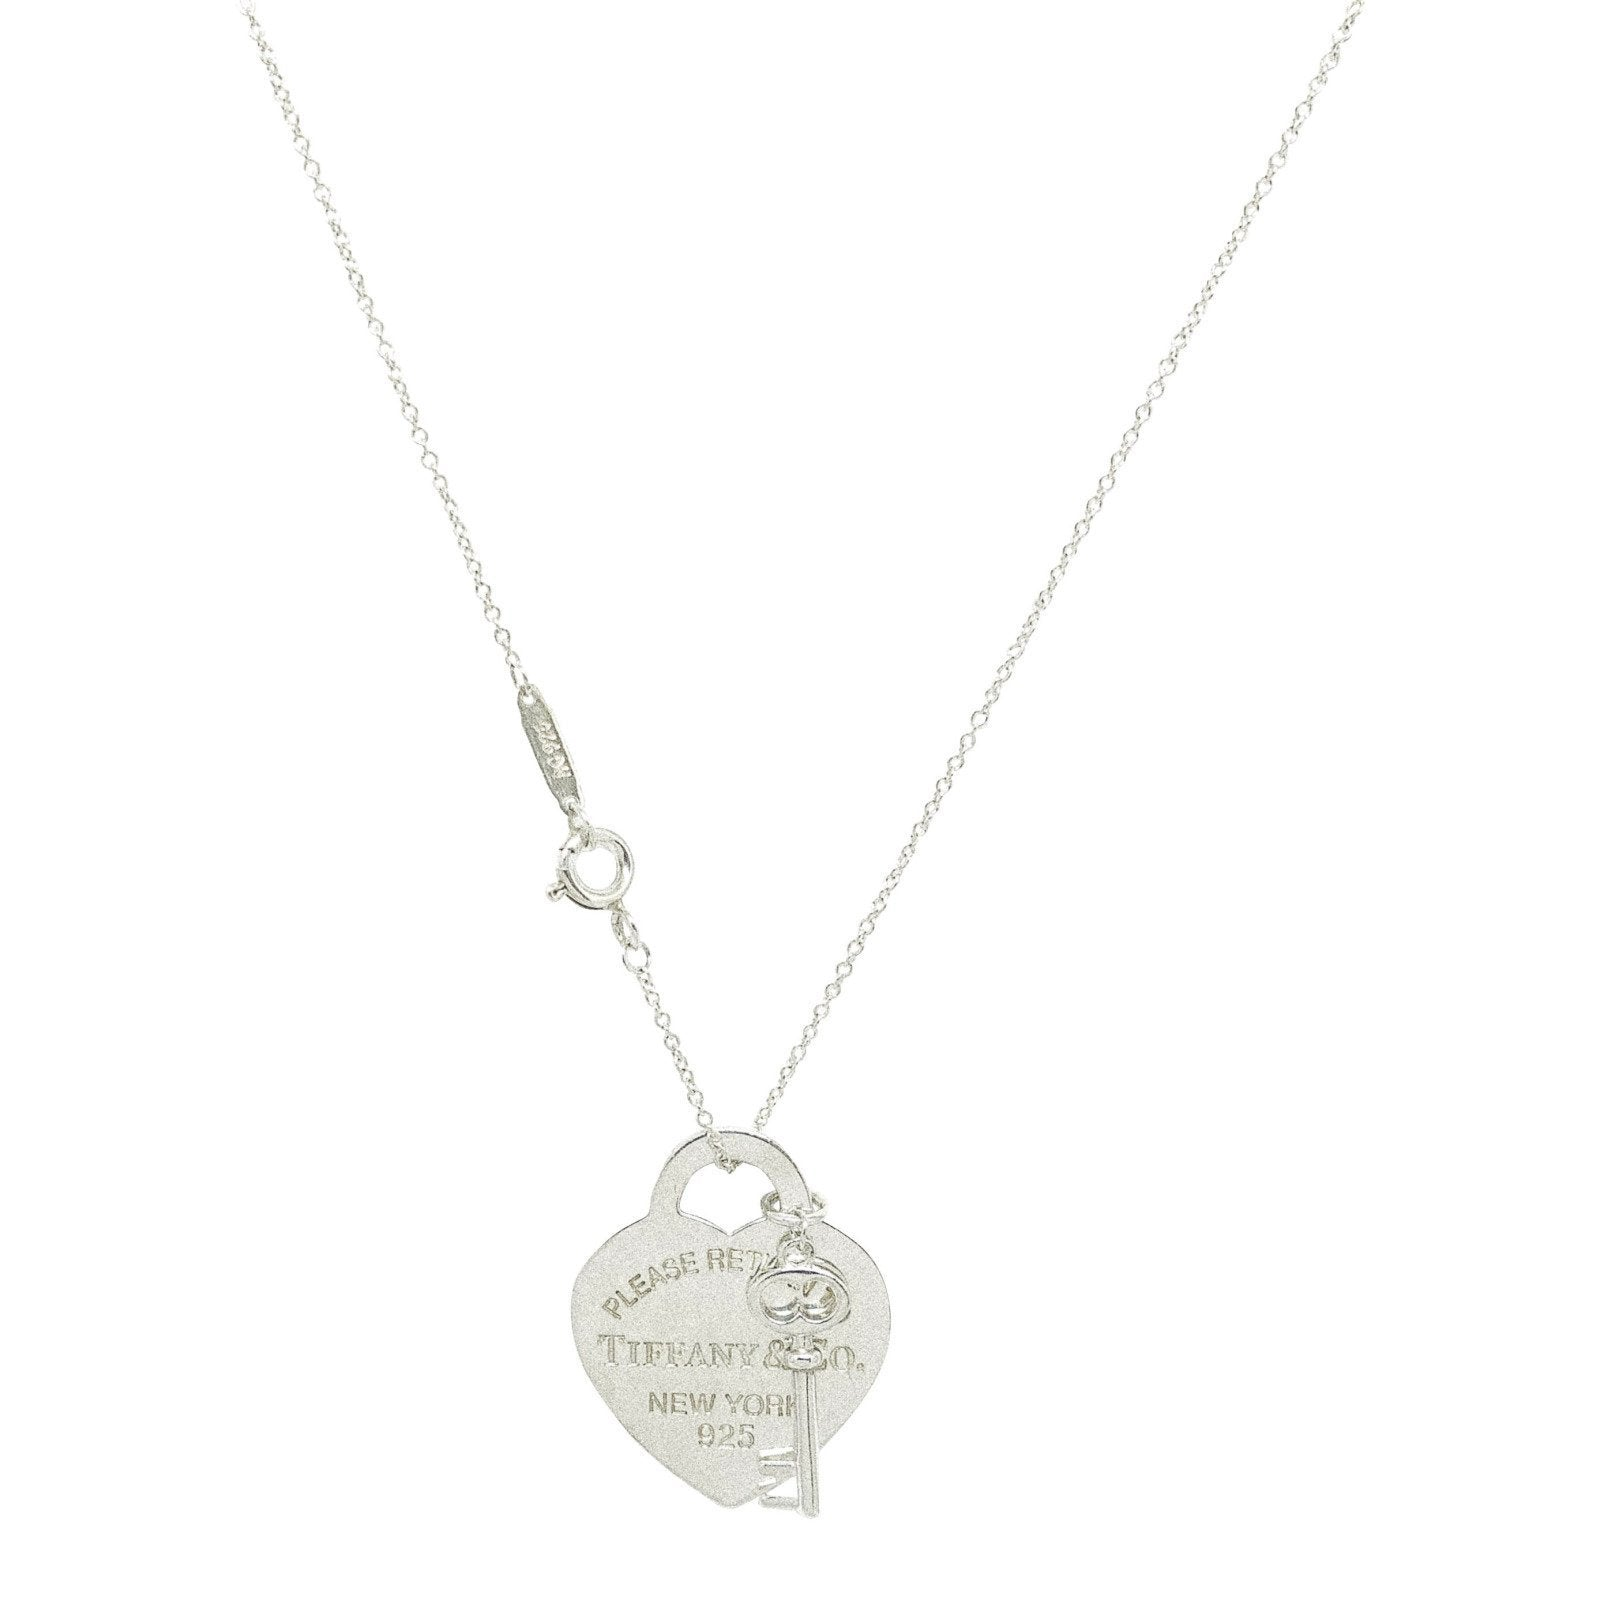 c54c52b63 Tiffany & Co. Return to Tiffany Heart Tag with Key Pendant Necklace  Necklaces Tiffany ...